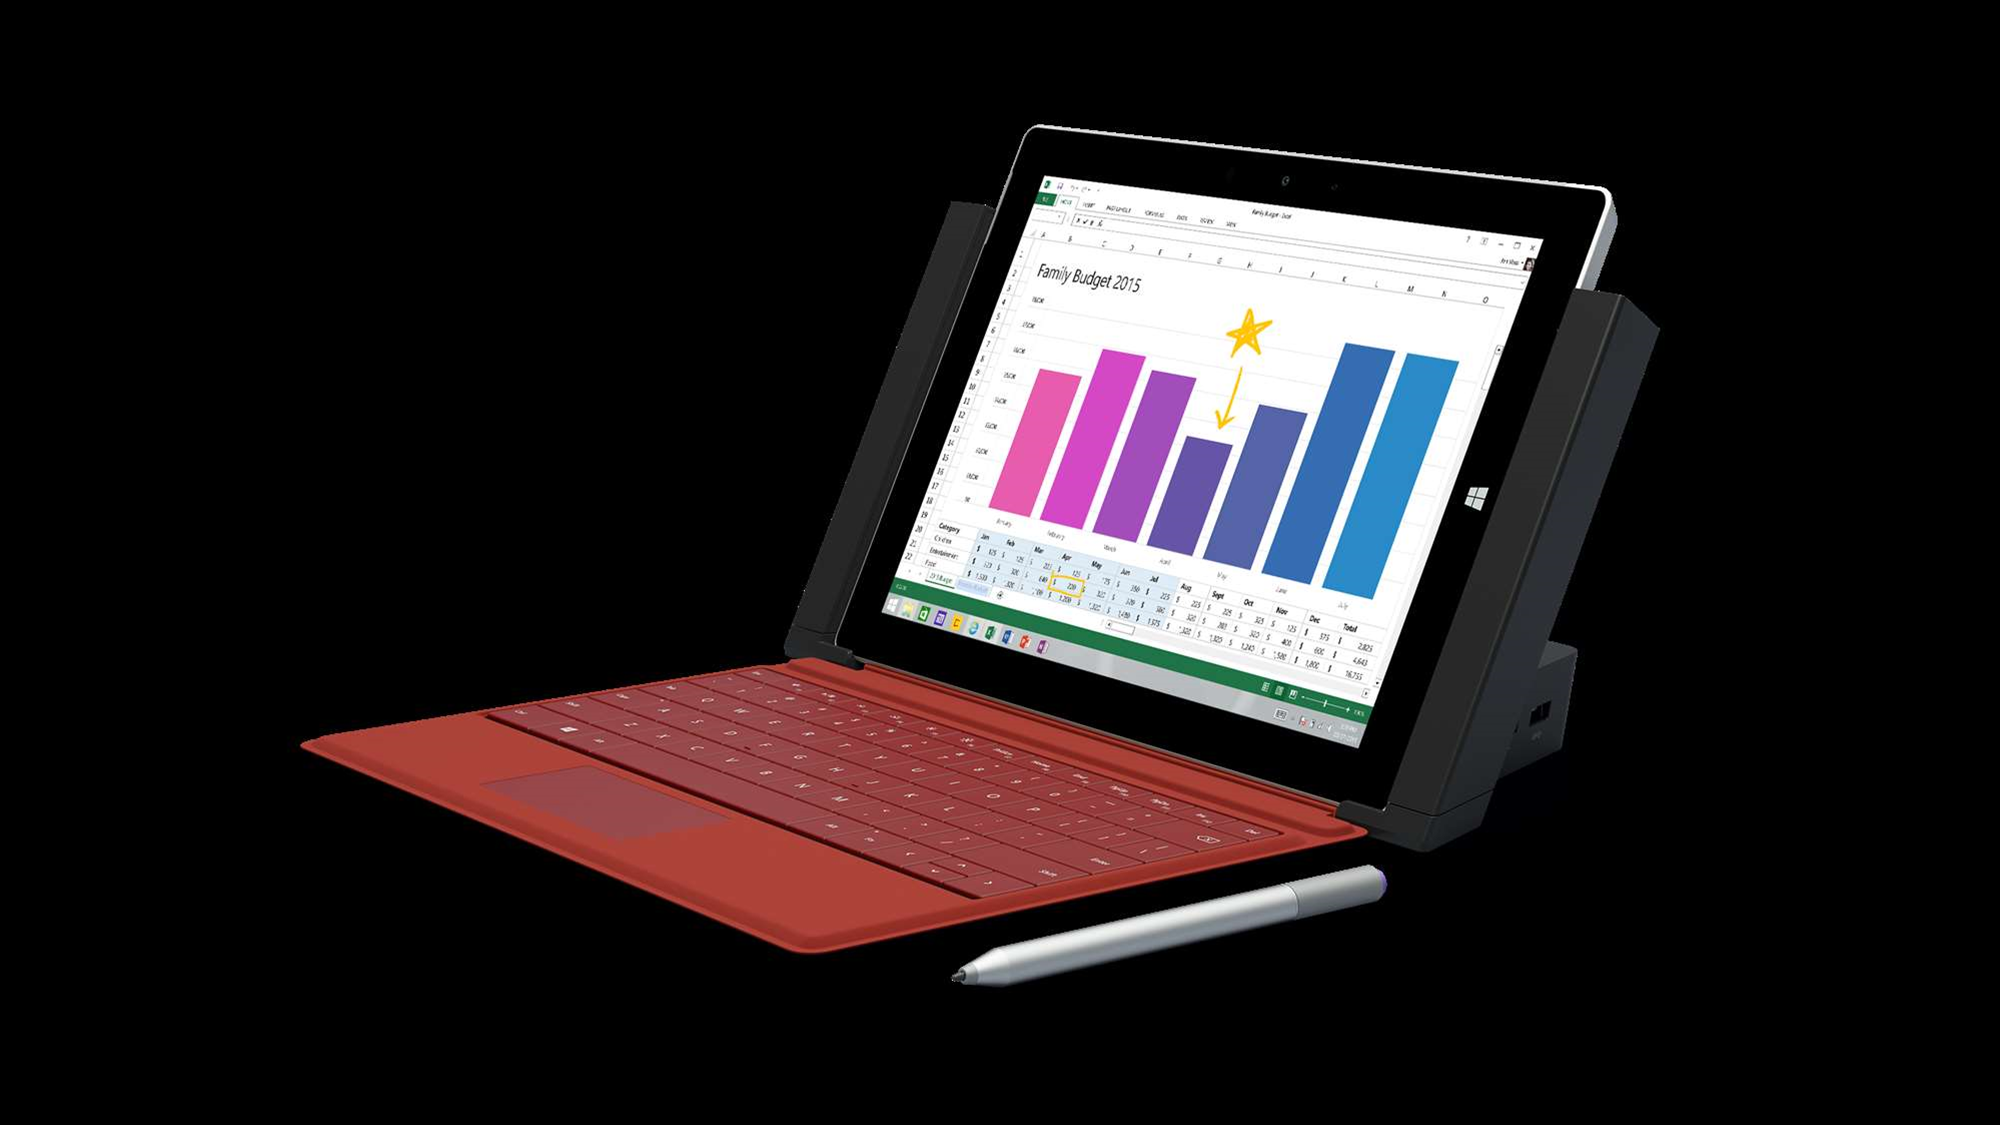 A close look at the new Surface 3